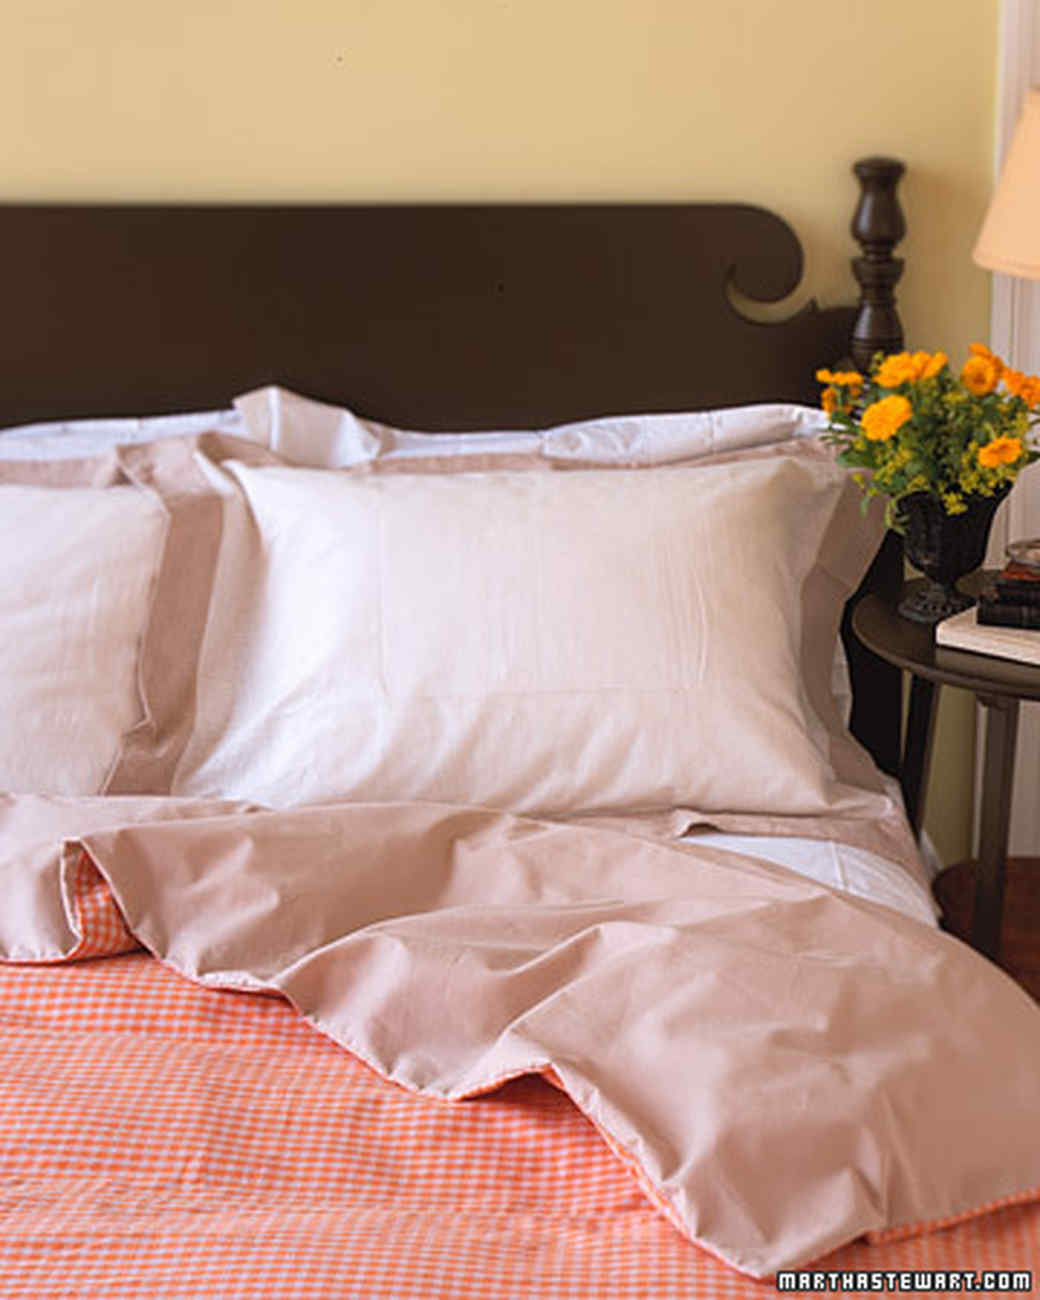 Drying Pillows & The Golden Rules of Washing Pillows Blankets and Down | Martha ... pillowsntoast.com